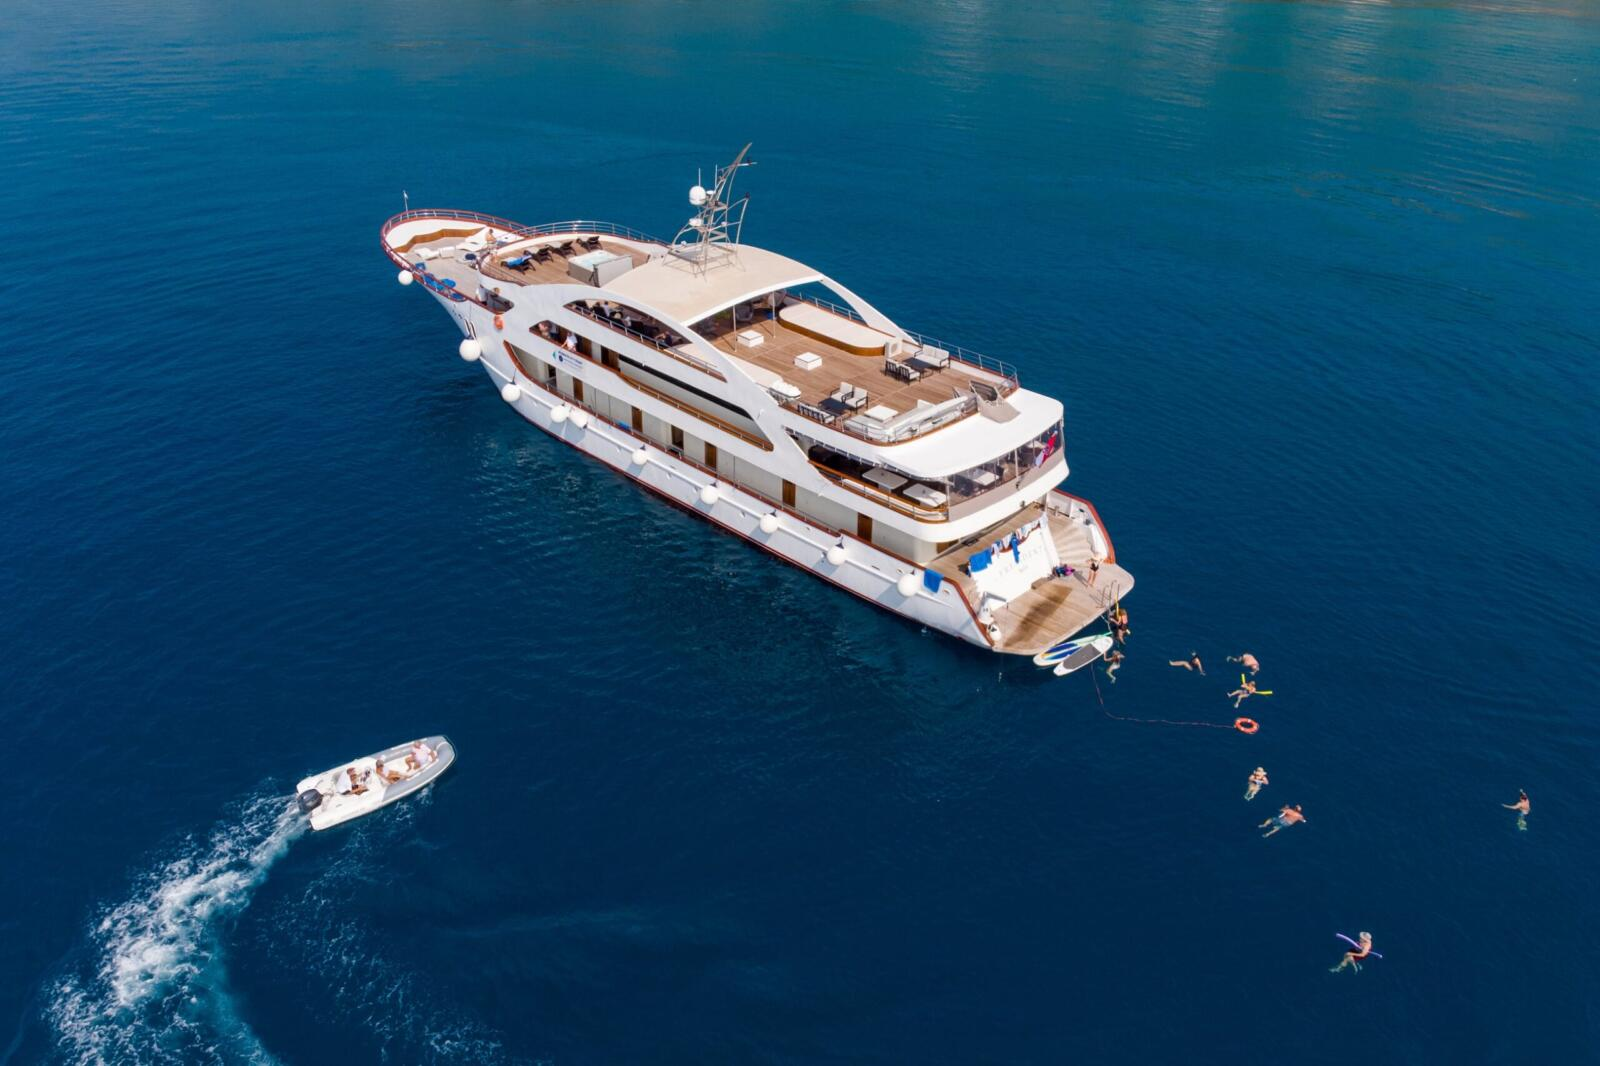 Swimming in the sea from luxury yacht in Croatia